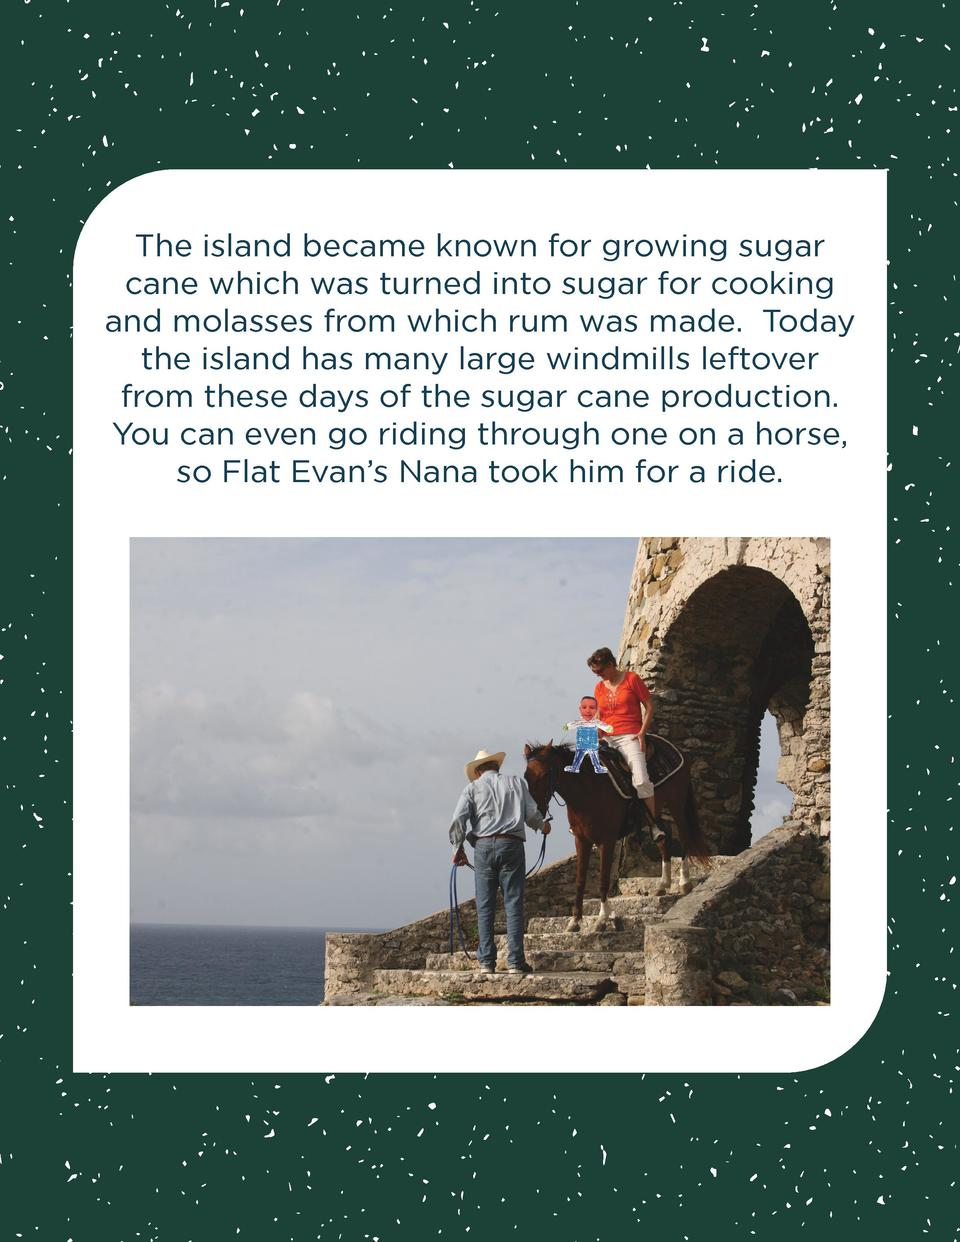 The island became known for growing sugar cane which was turned into sugar for cooking and molasses from which rum was mad...